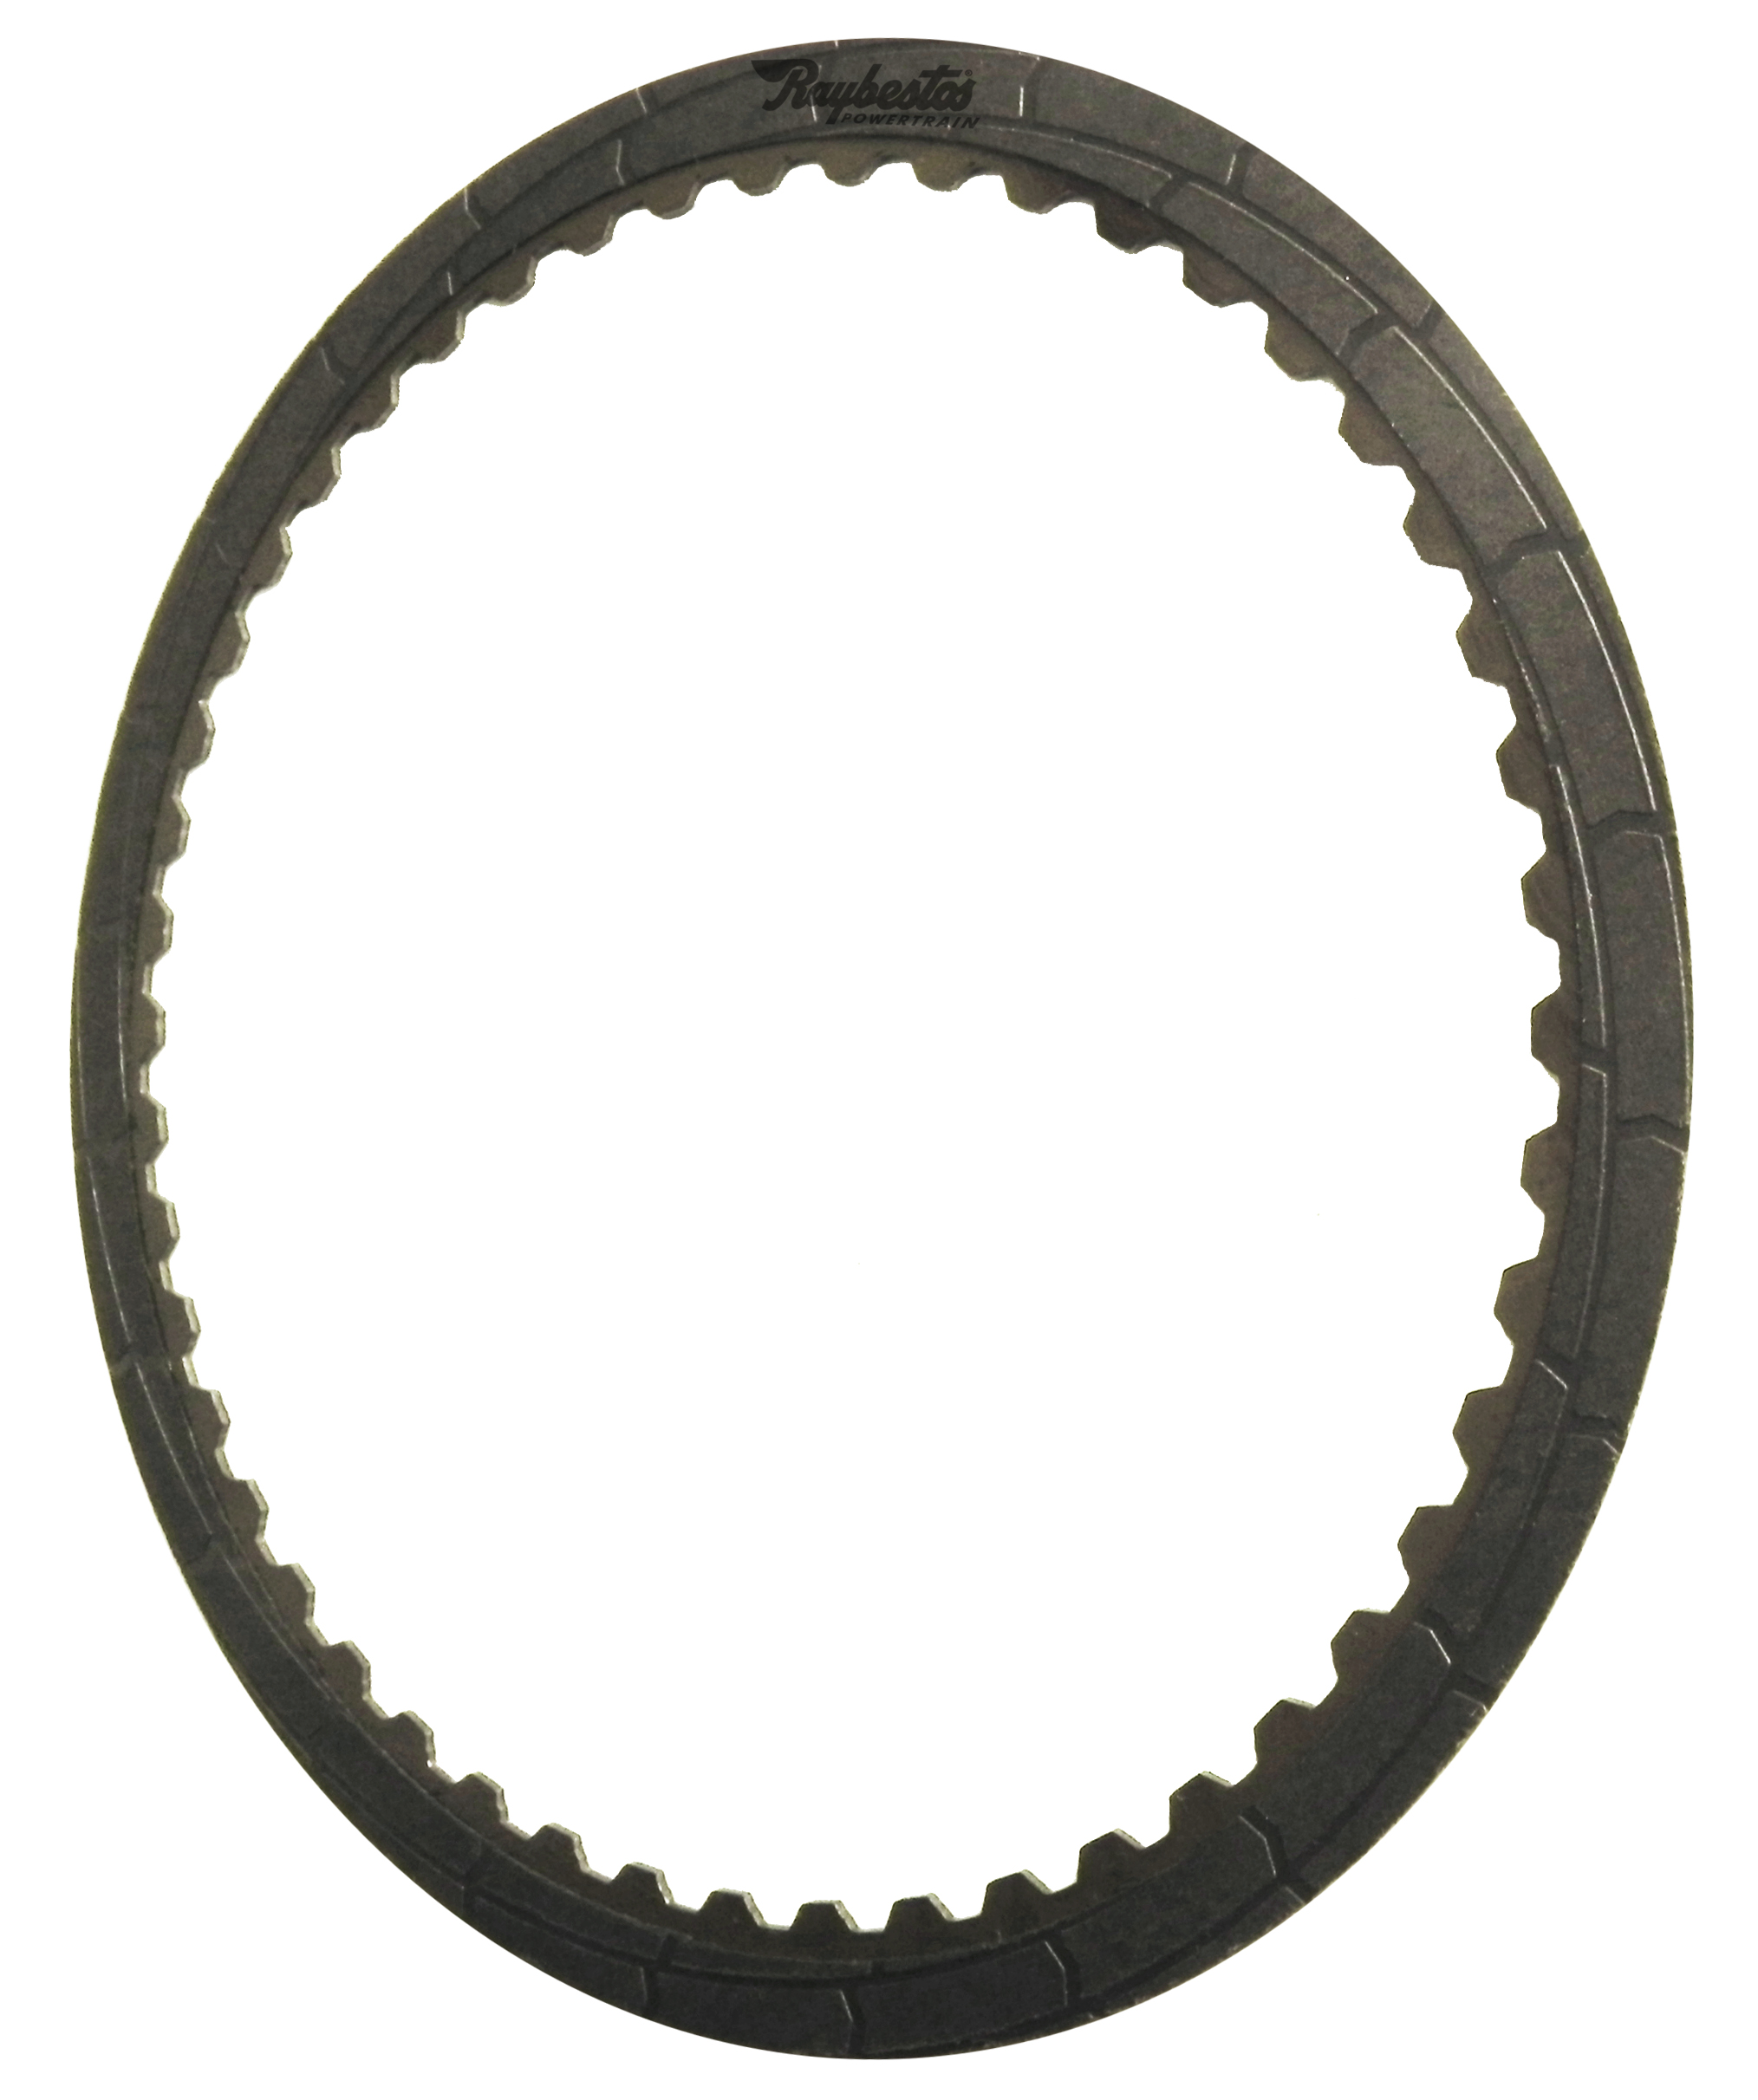 RH576620 | 2003-ON Friction Clutch Plate (HT) Hybrid Technology #4 Brake Proprietary High Energy (HT)